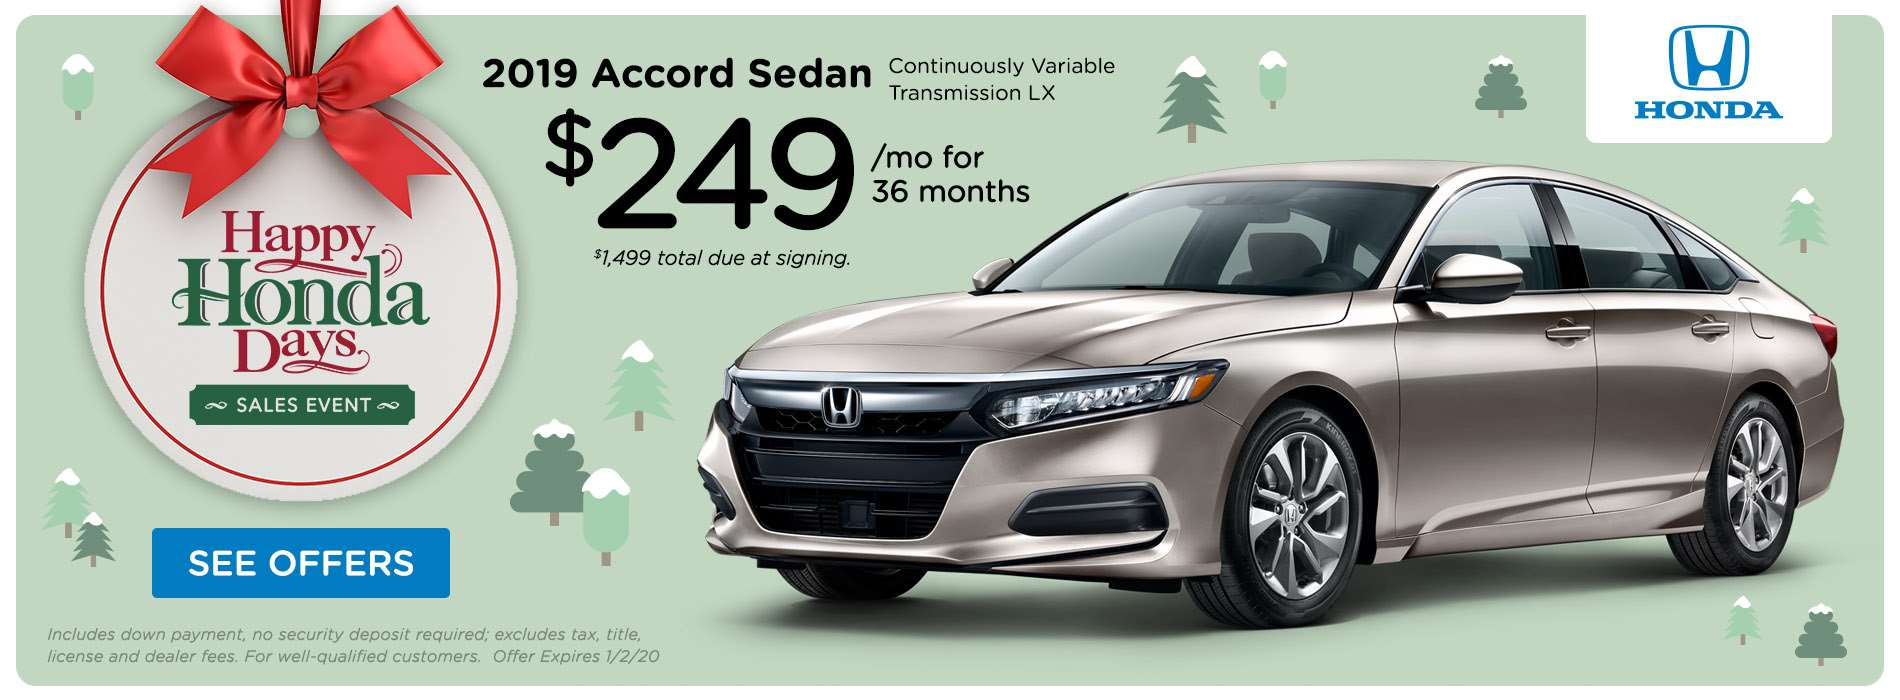 Honda Sioux City HHD 2019 Accord Offer